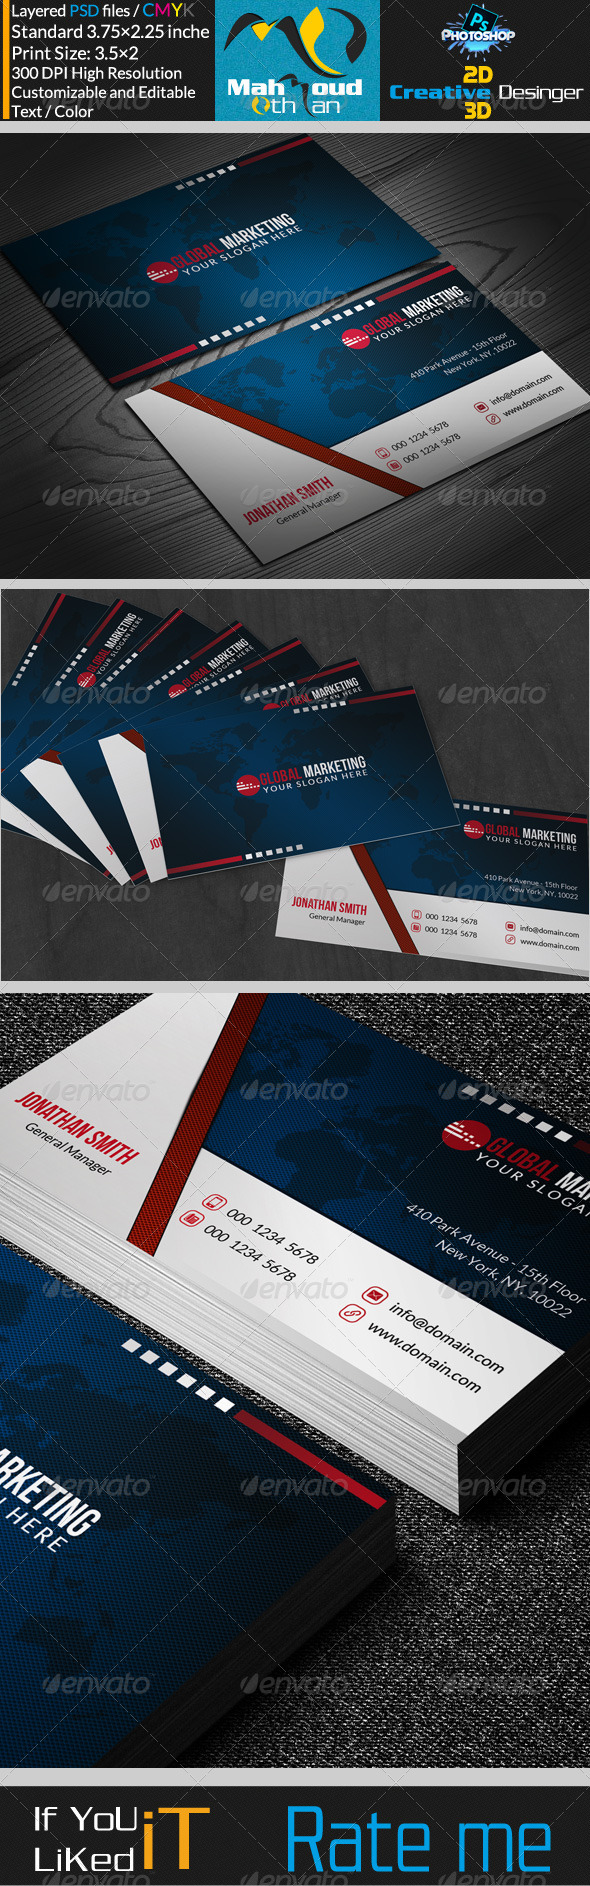 Corportae Business Card V09 - Corporate Business Cards